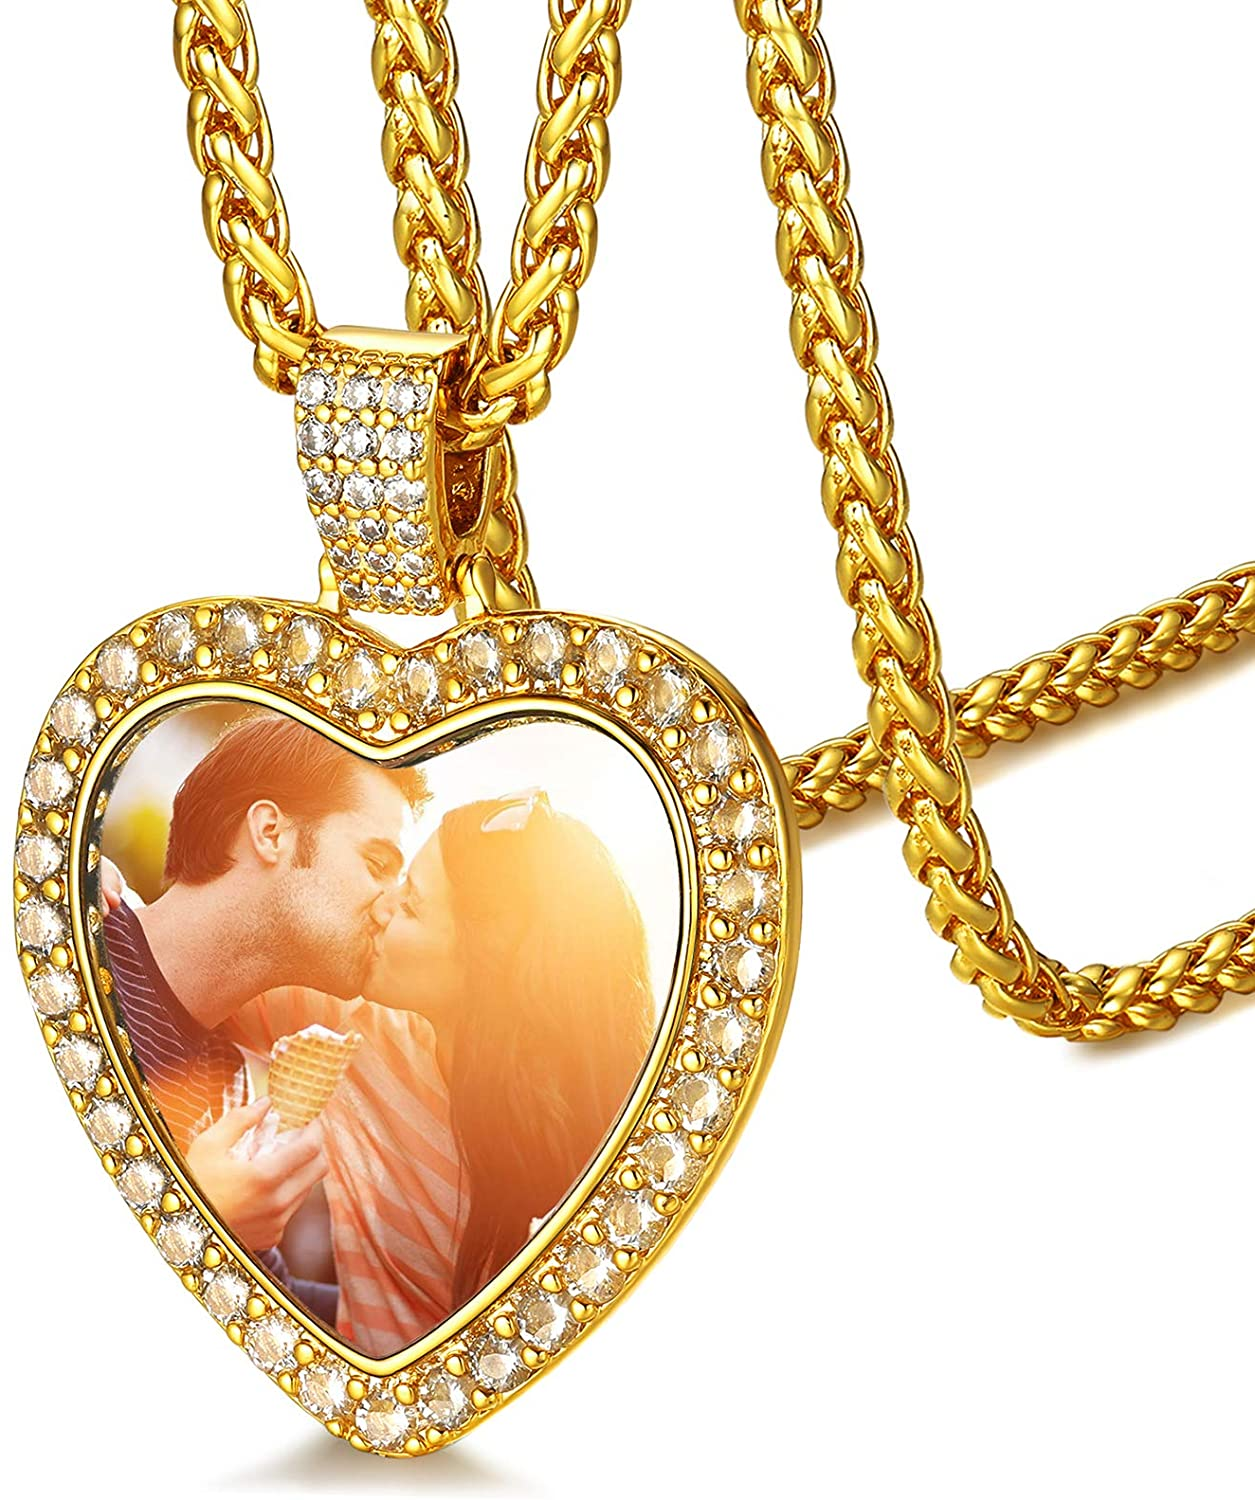 FaithHeart Custom Photo Necklace Personalized Picture Necklaces for Women Men Round/Heart Pendant Necklaces Hip Hop Jewelry